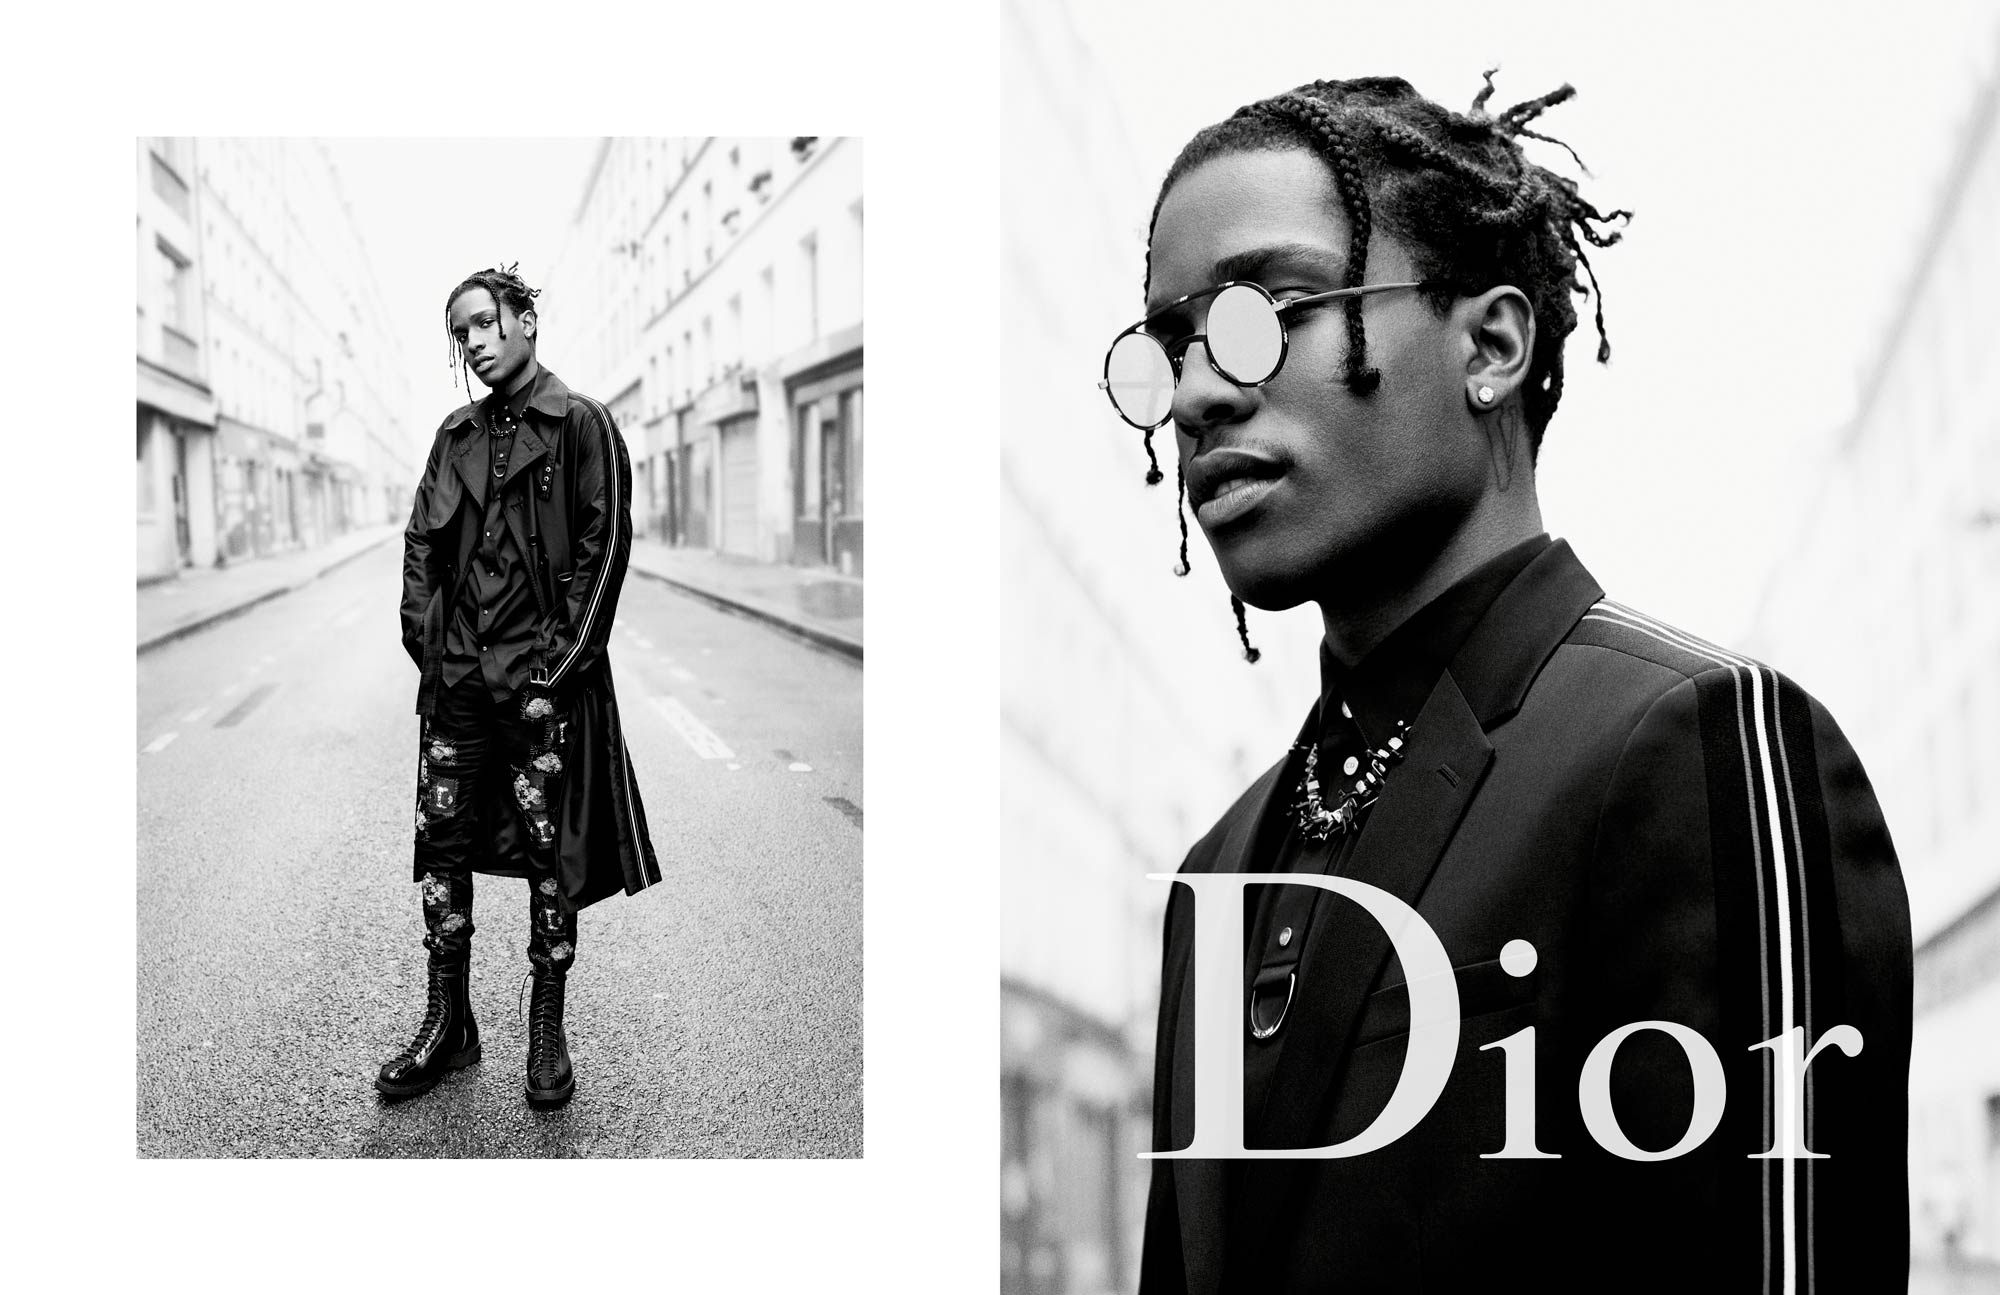 Dior Homme Summer 17 Ad Campaign Feat. A$AP Rocky & Boy George